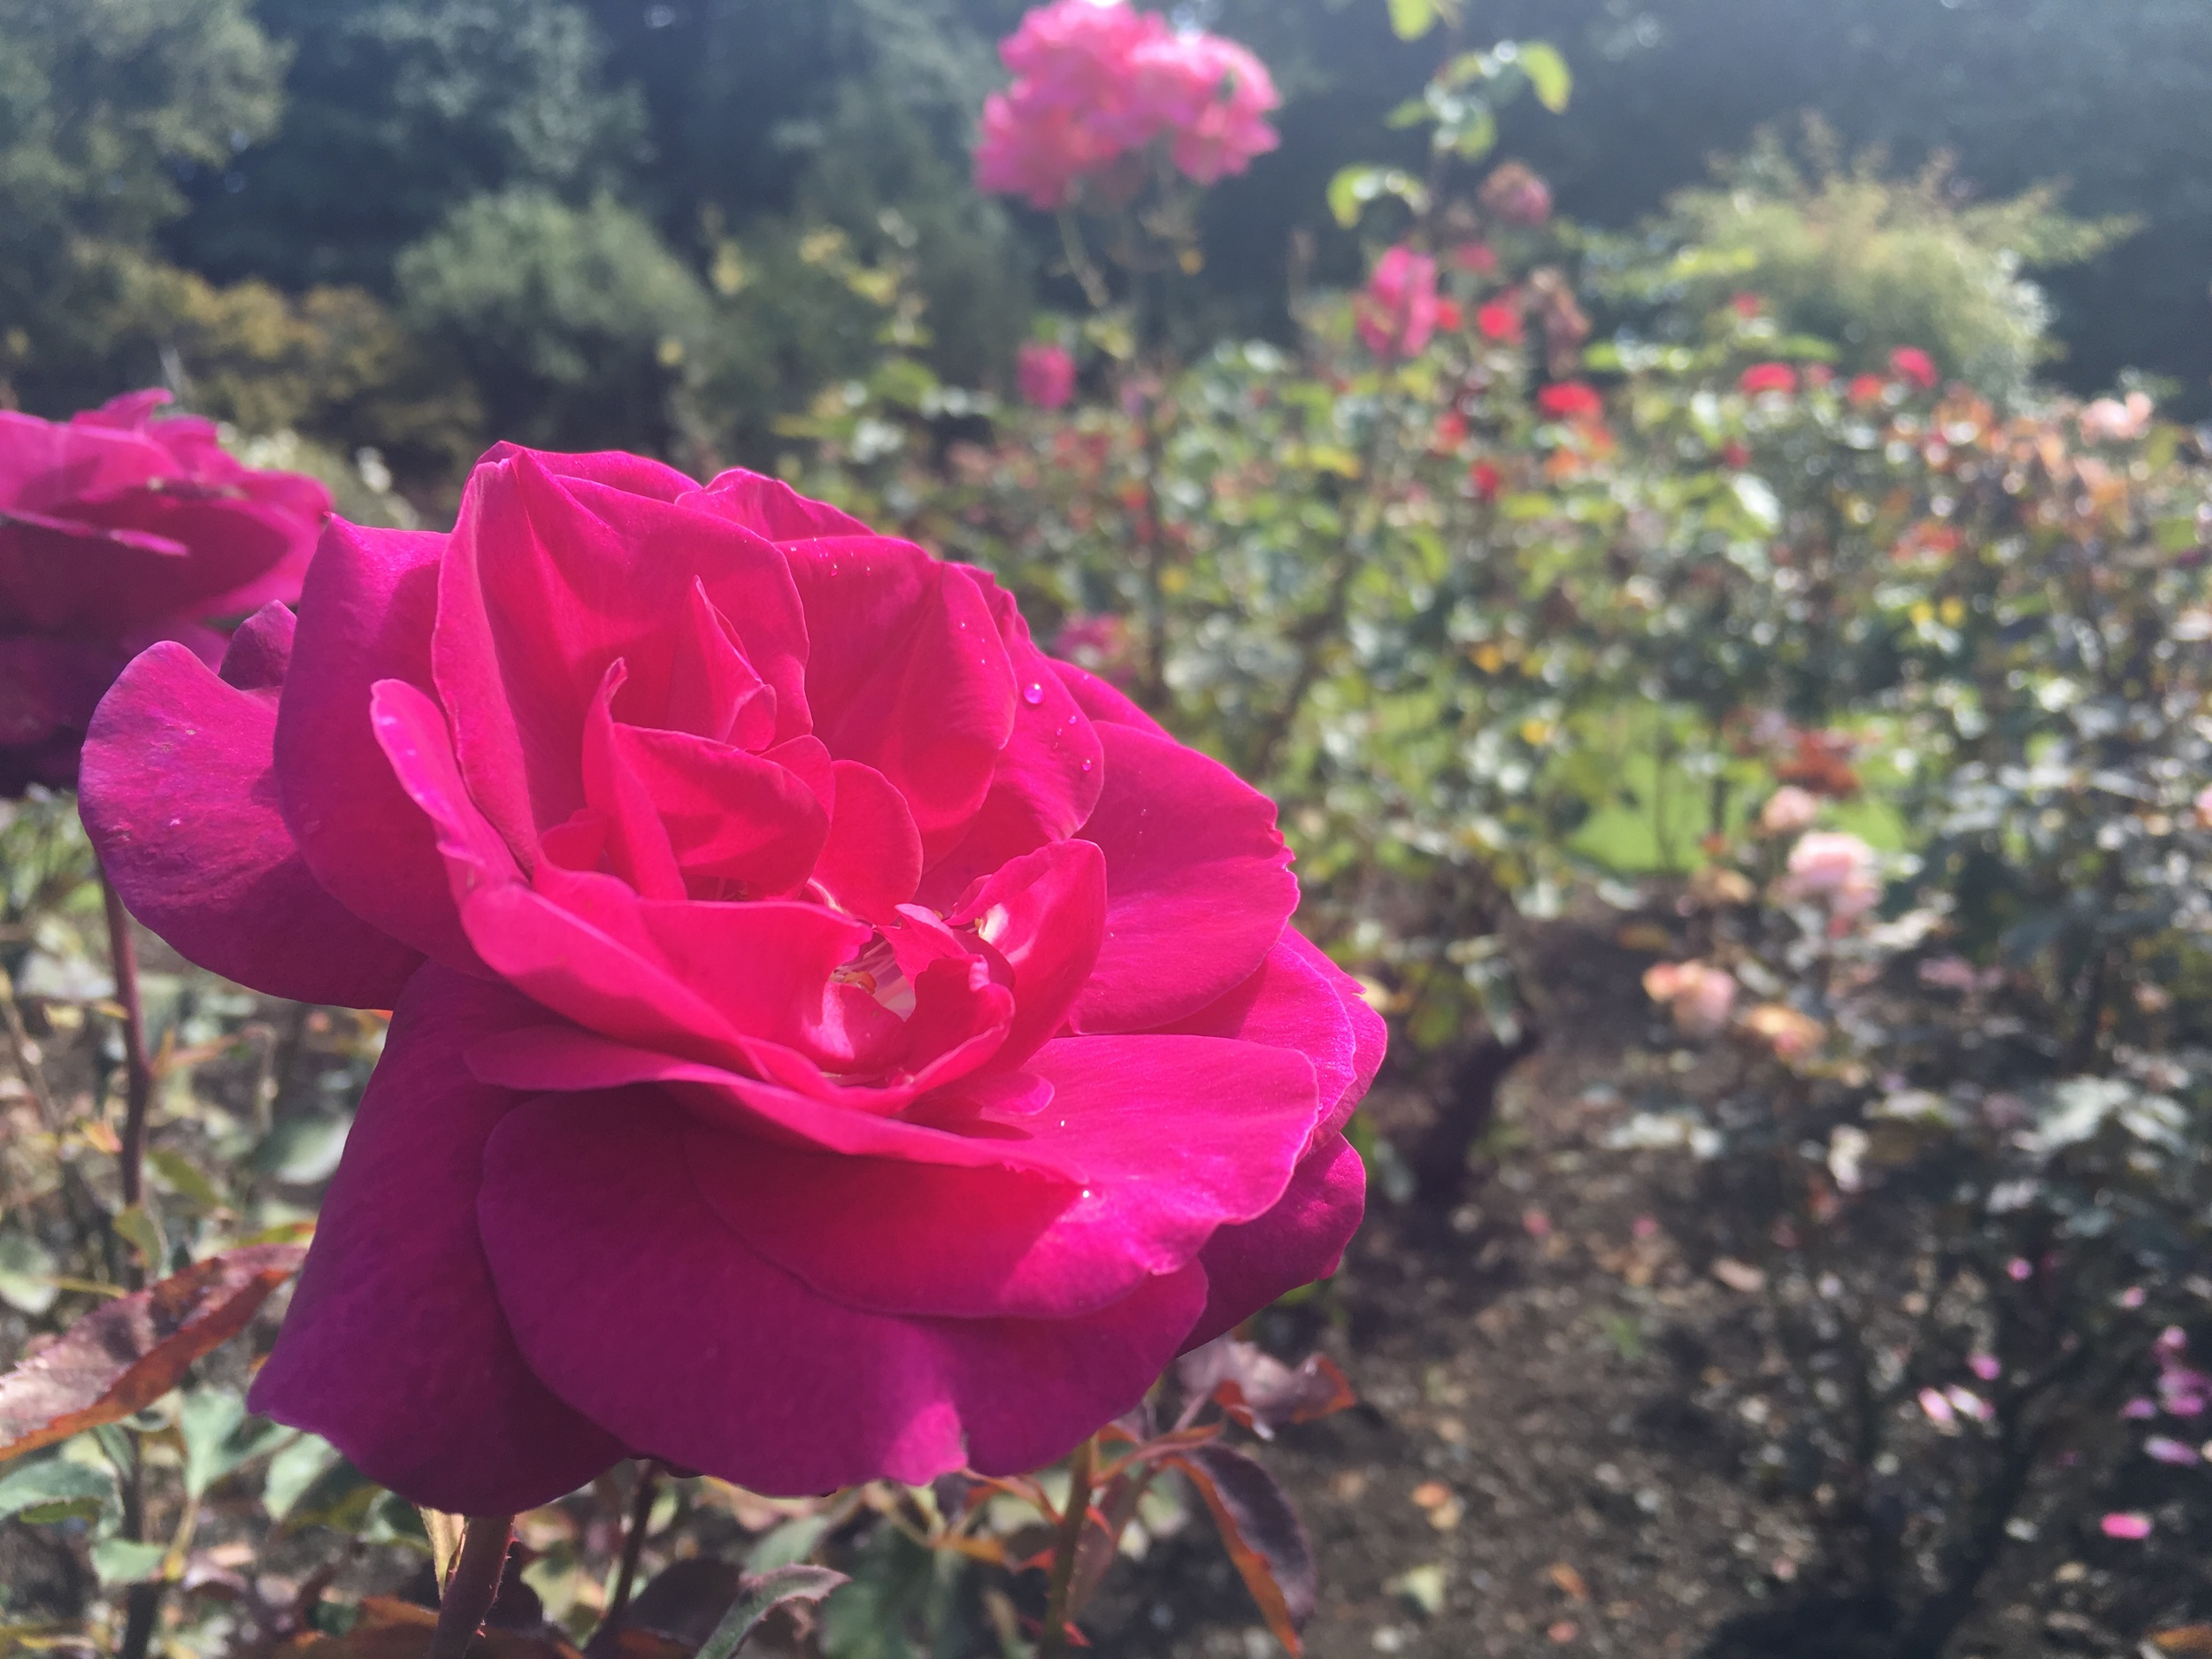 Rose garden at Queens Park, Invercargill